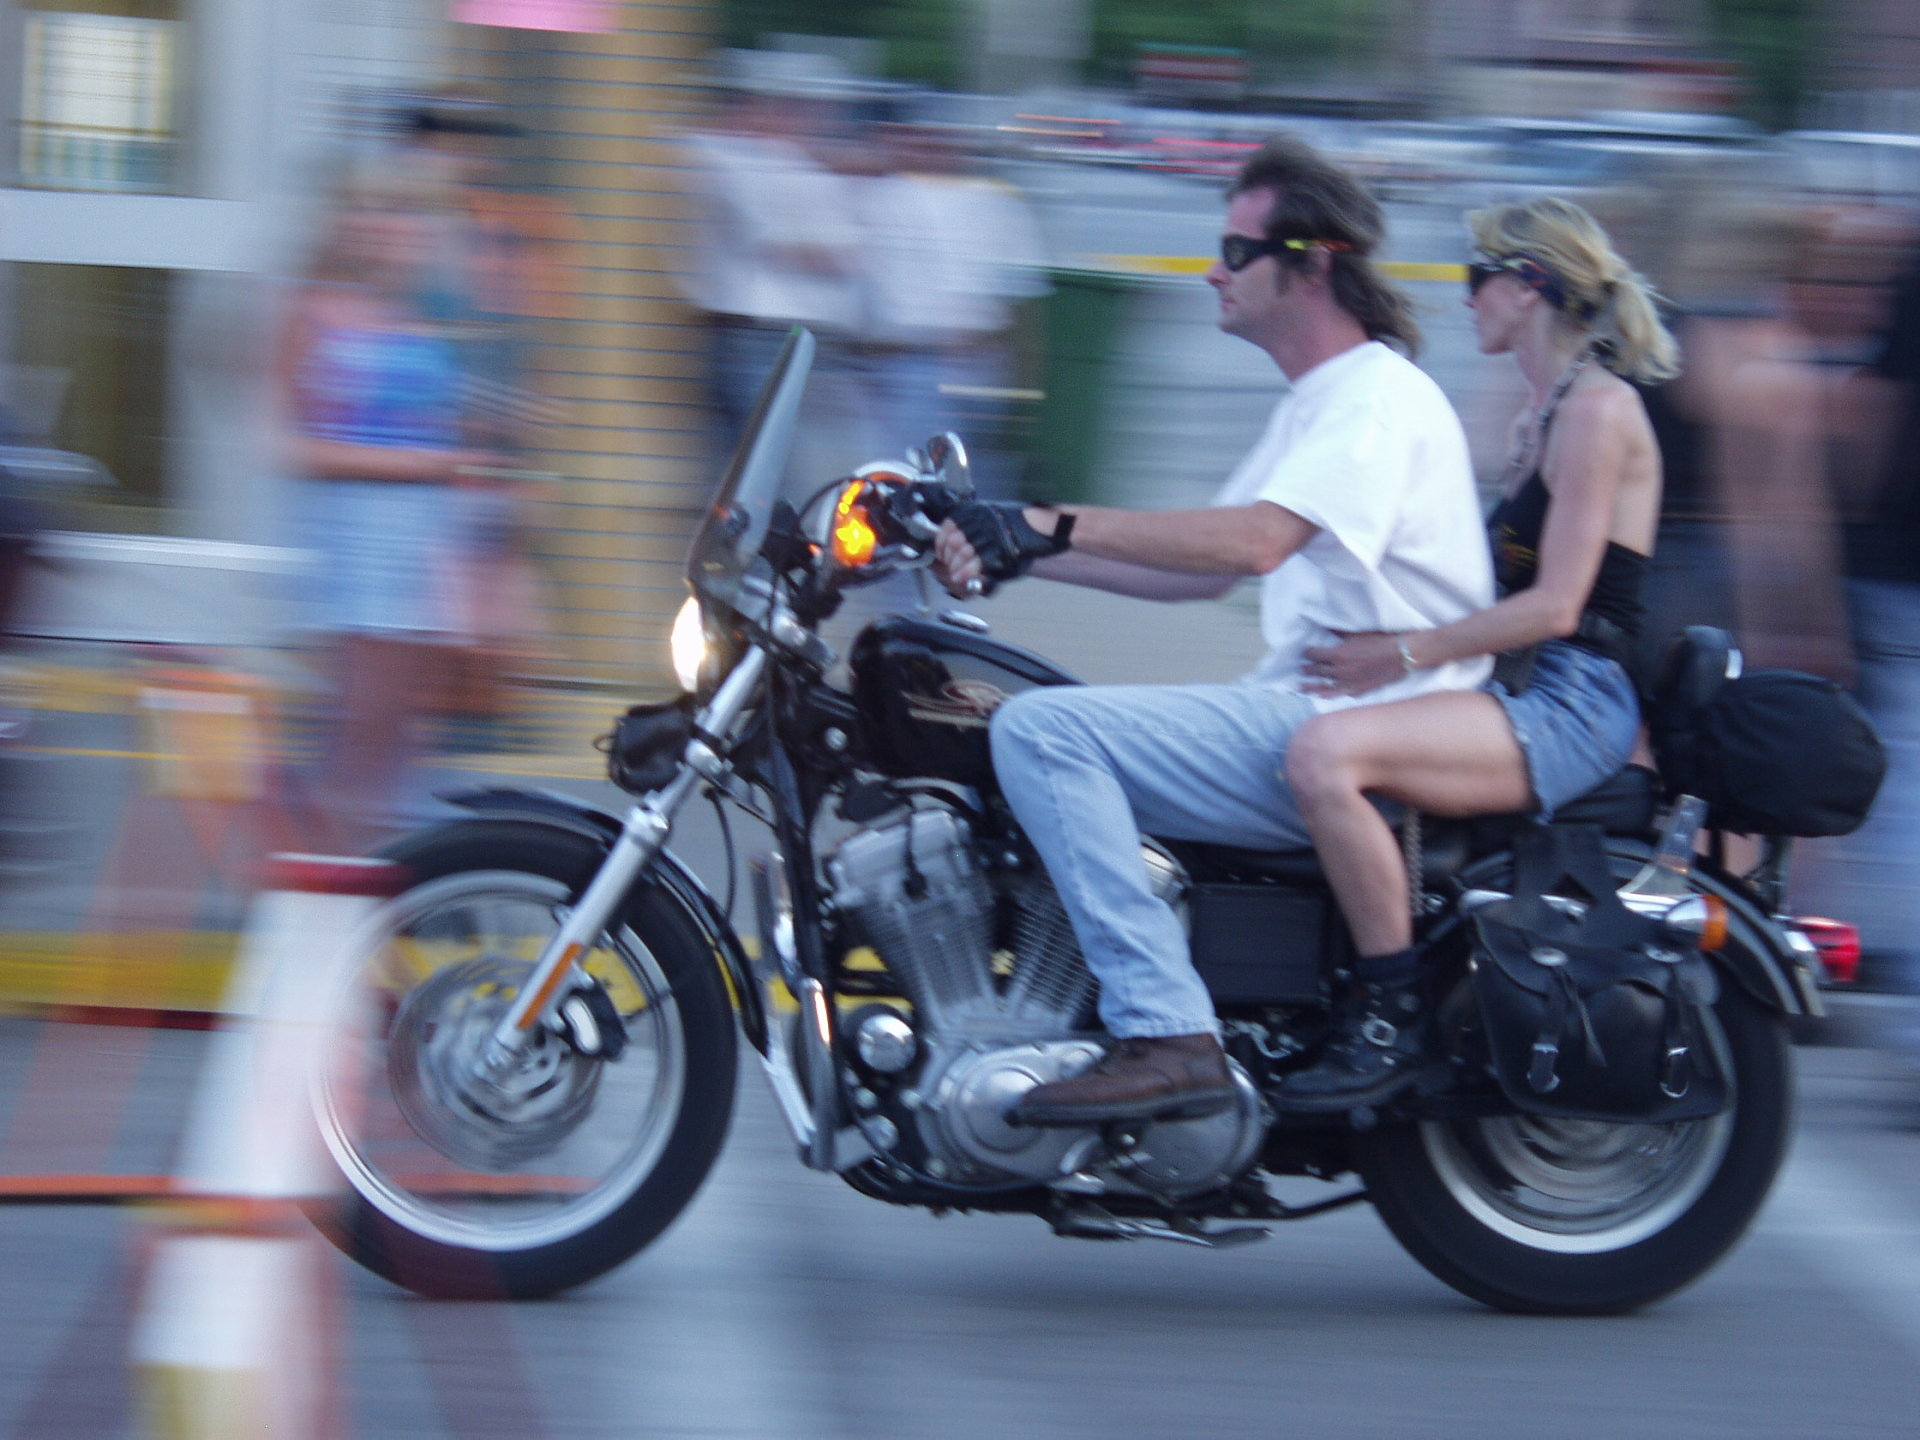 speeding motorcylists